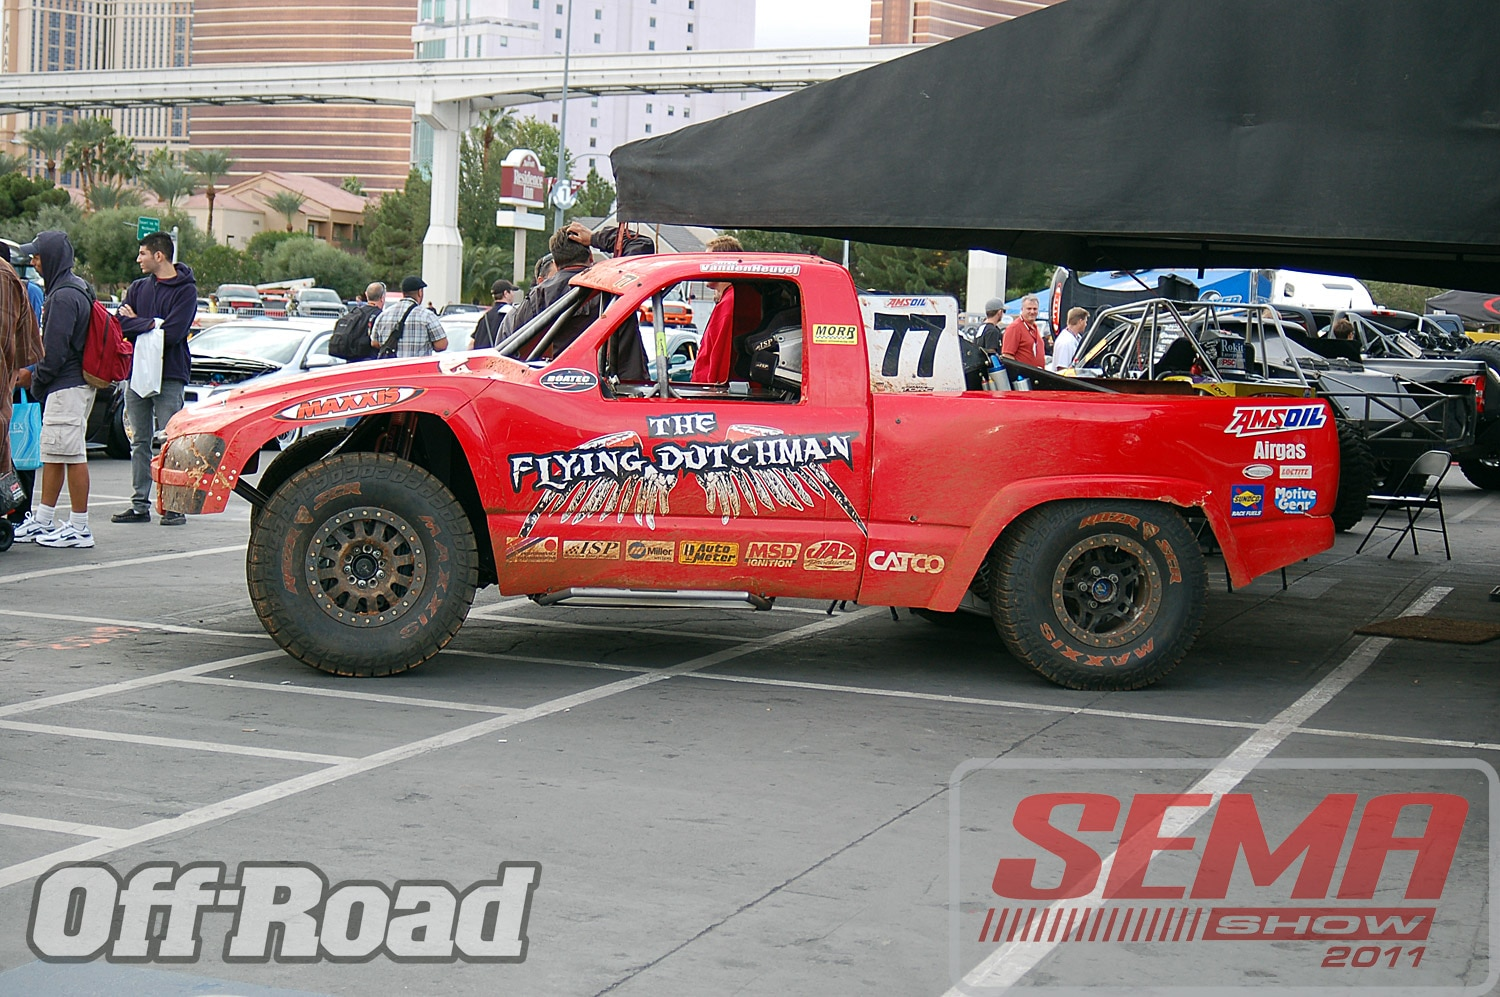 102312or 0243+2011 sema show+off road trucks and products